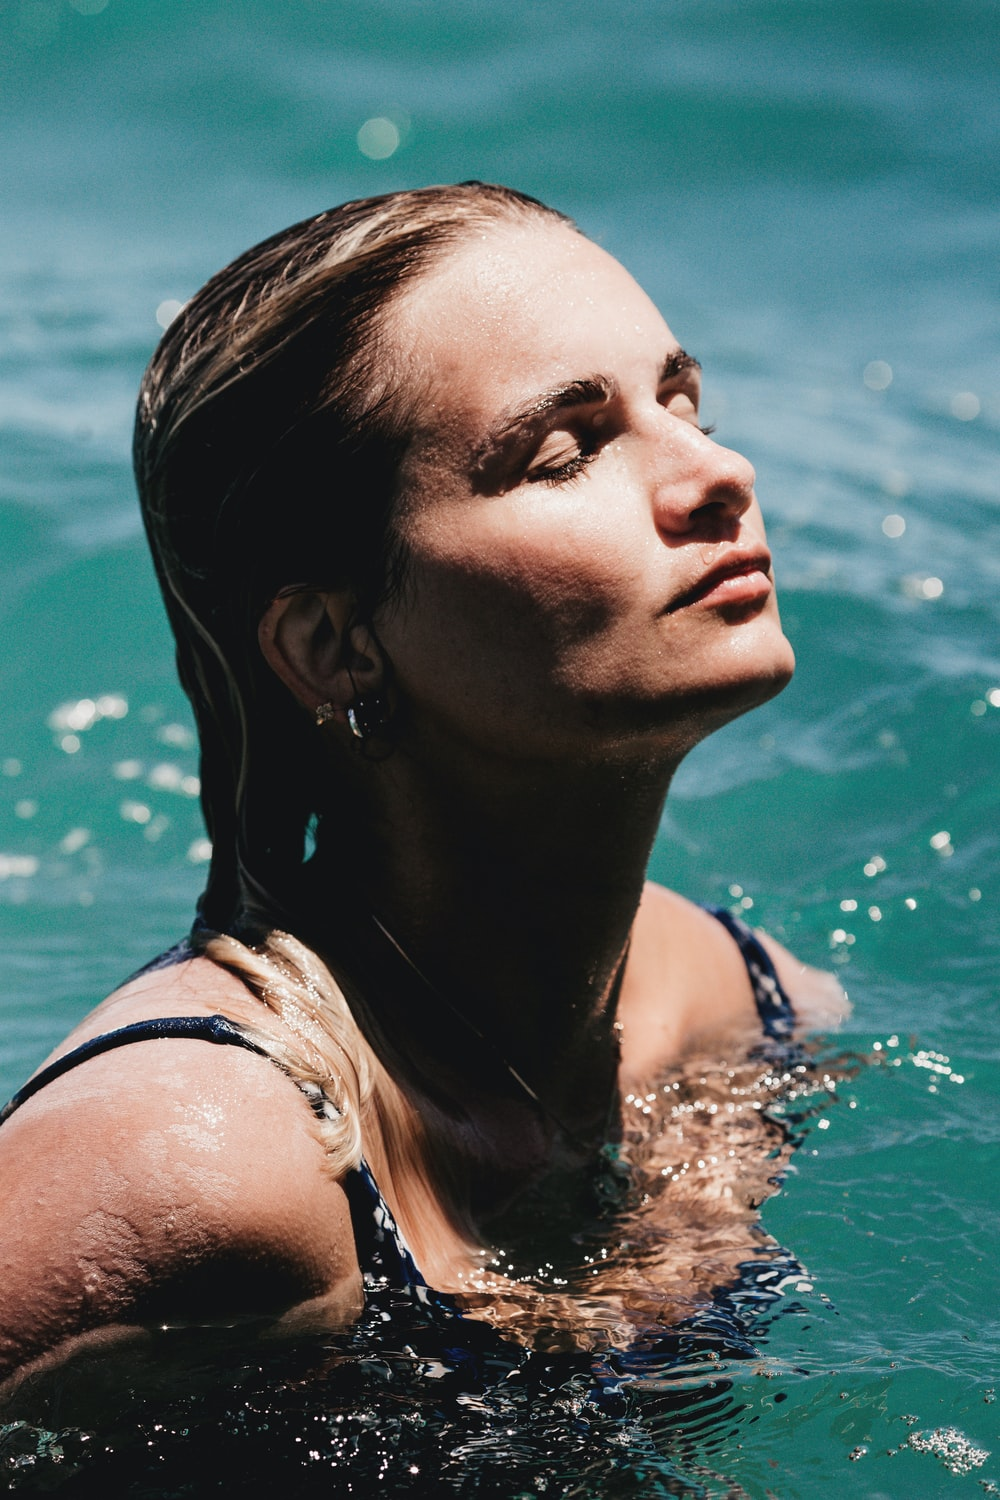 woman in white tank top in water